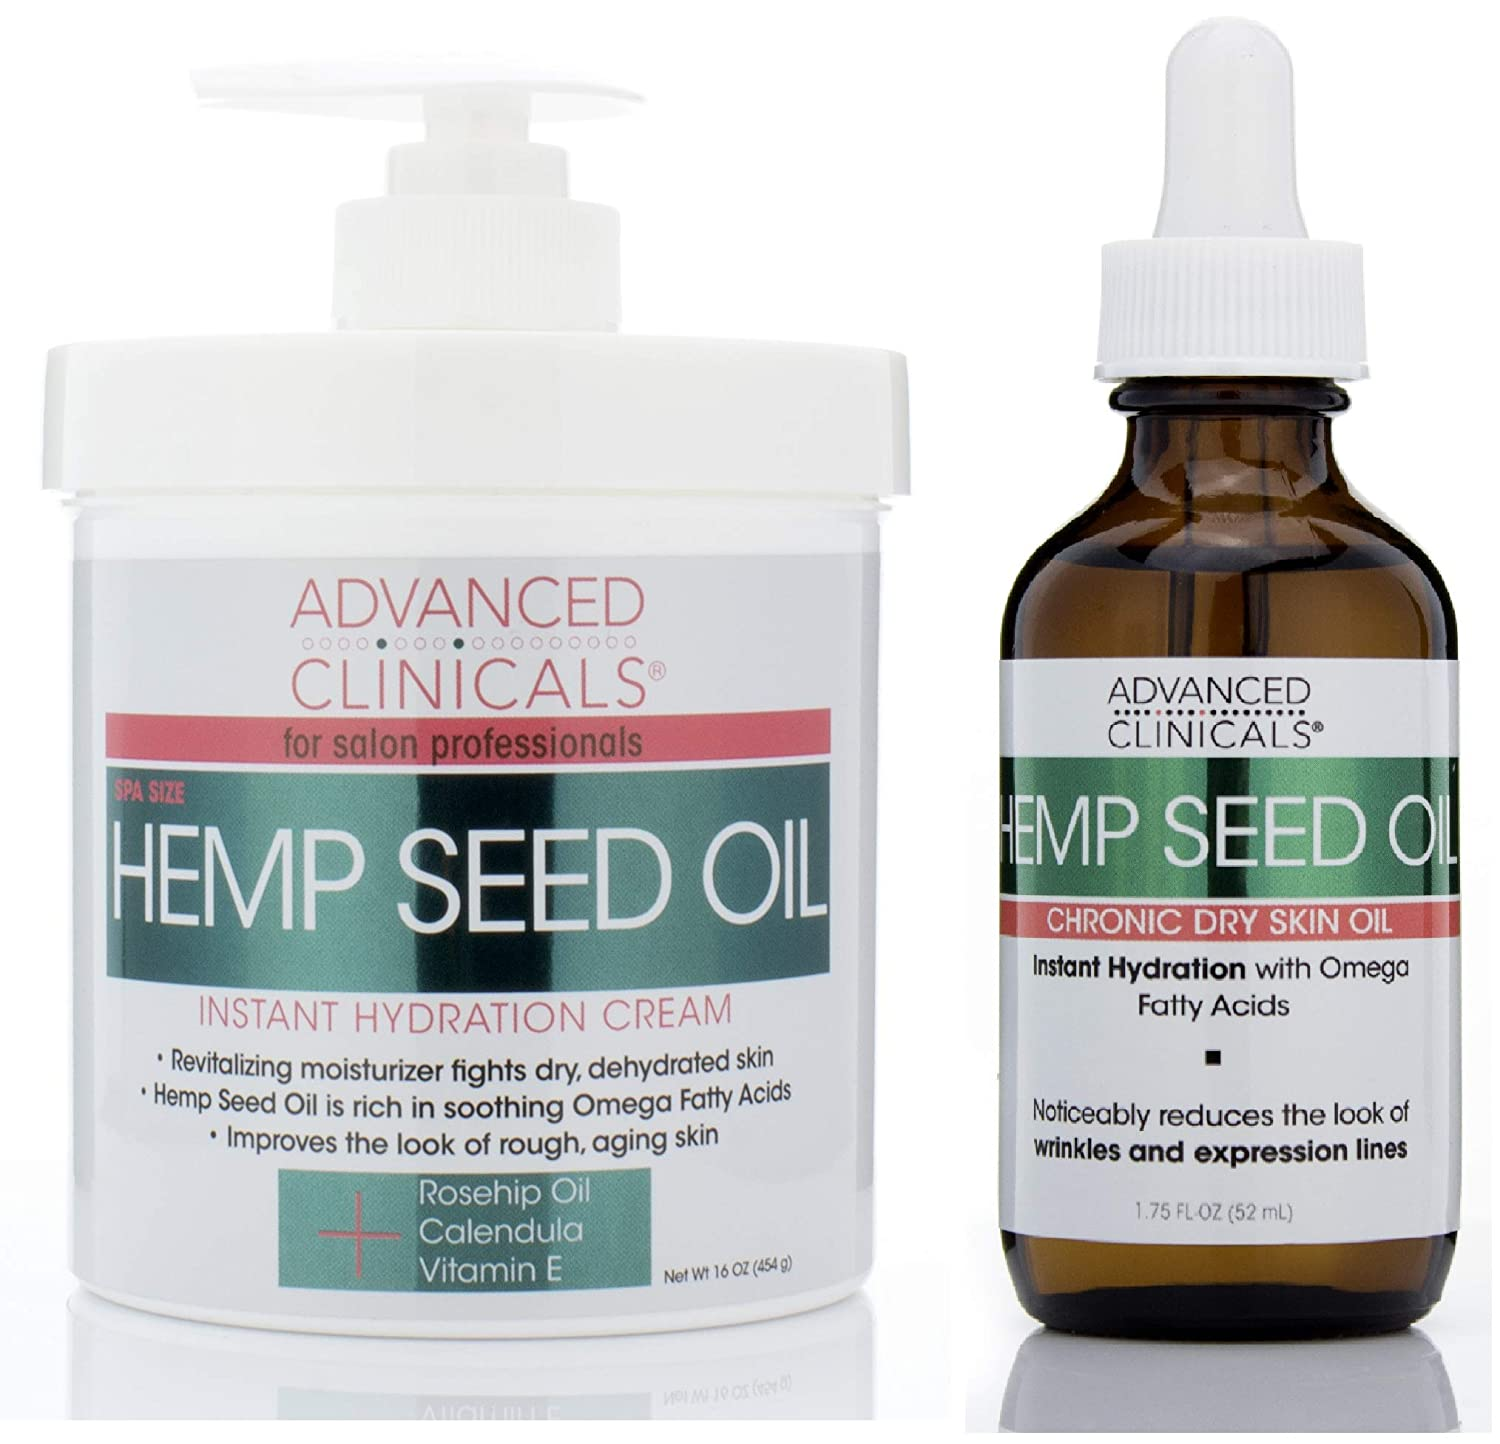 Advanced Clinicals Hemp Seed Oil Set with Cold Pressed Hemp Seed Oil. Hemp Facial oil (1.8oz) and Spa Size Hemp Seed oil cream for body and face (16oz)